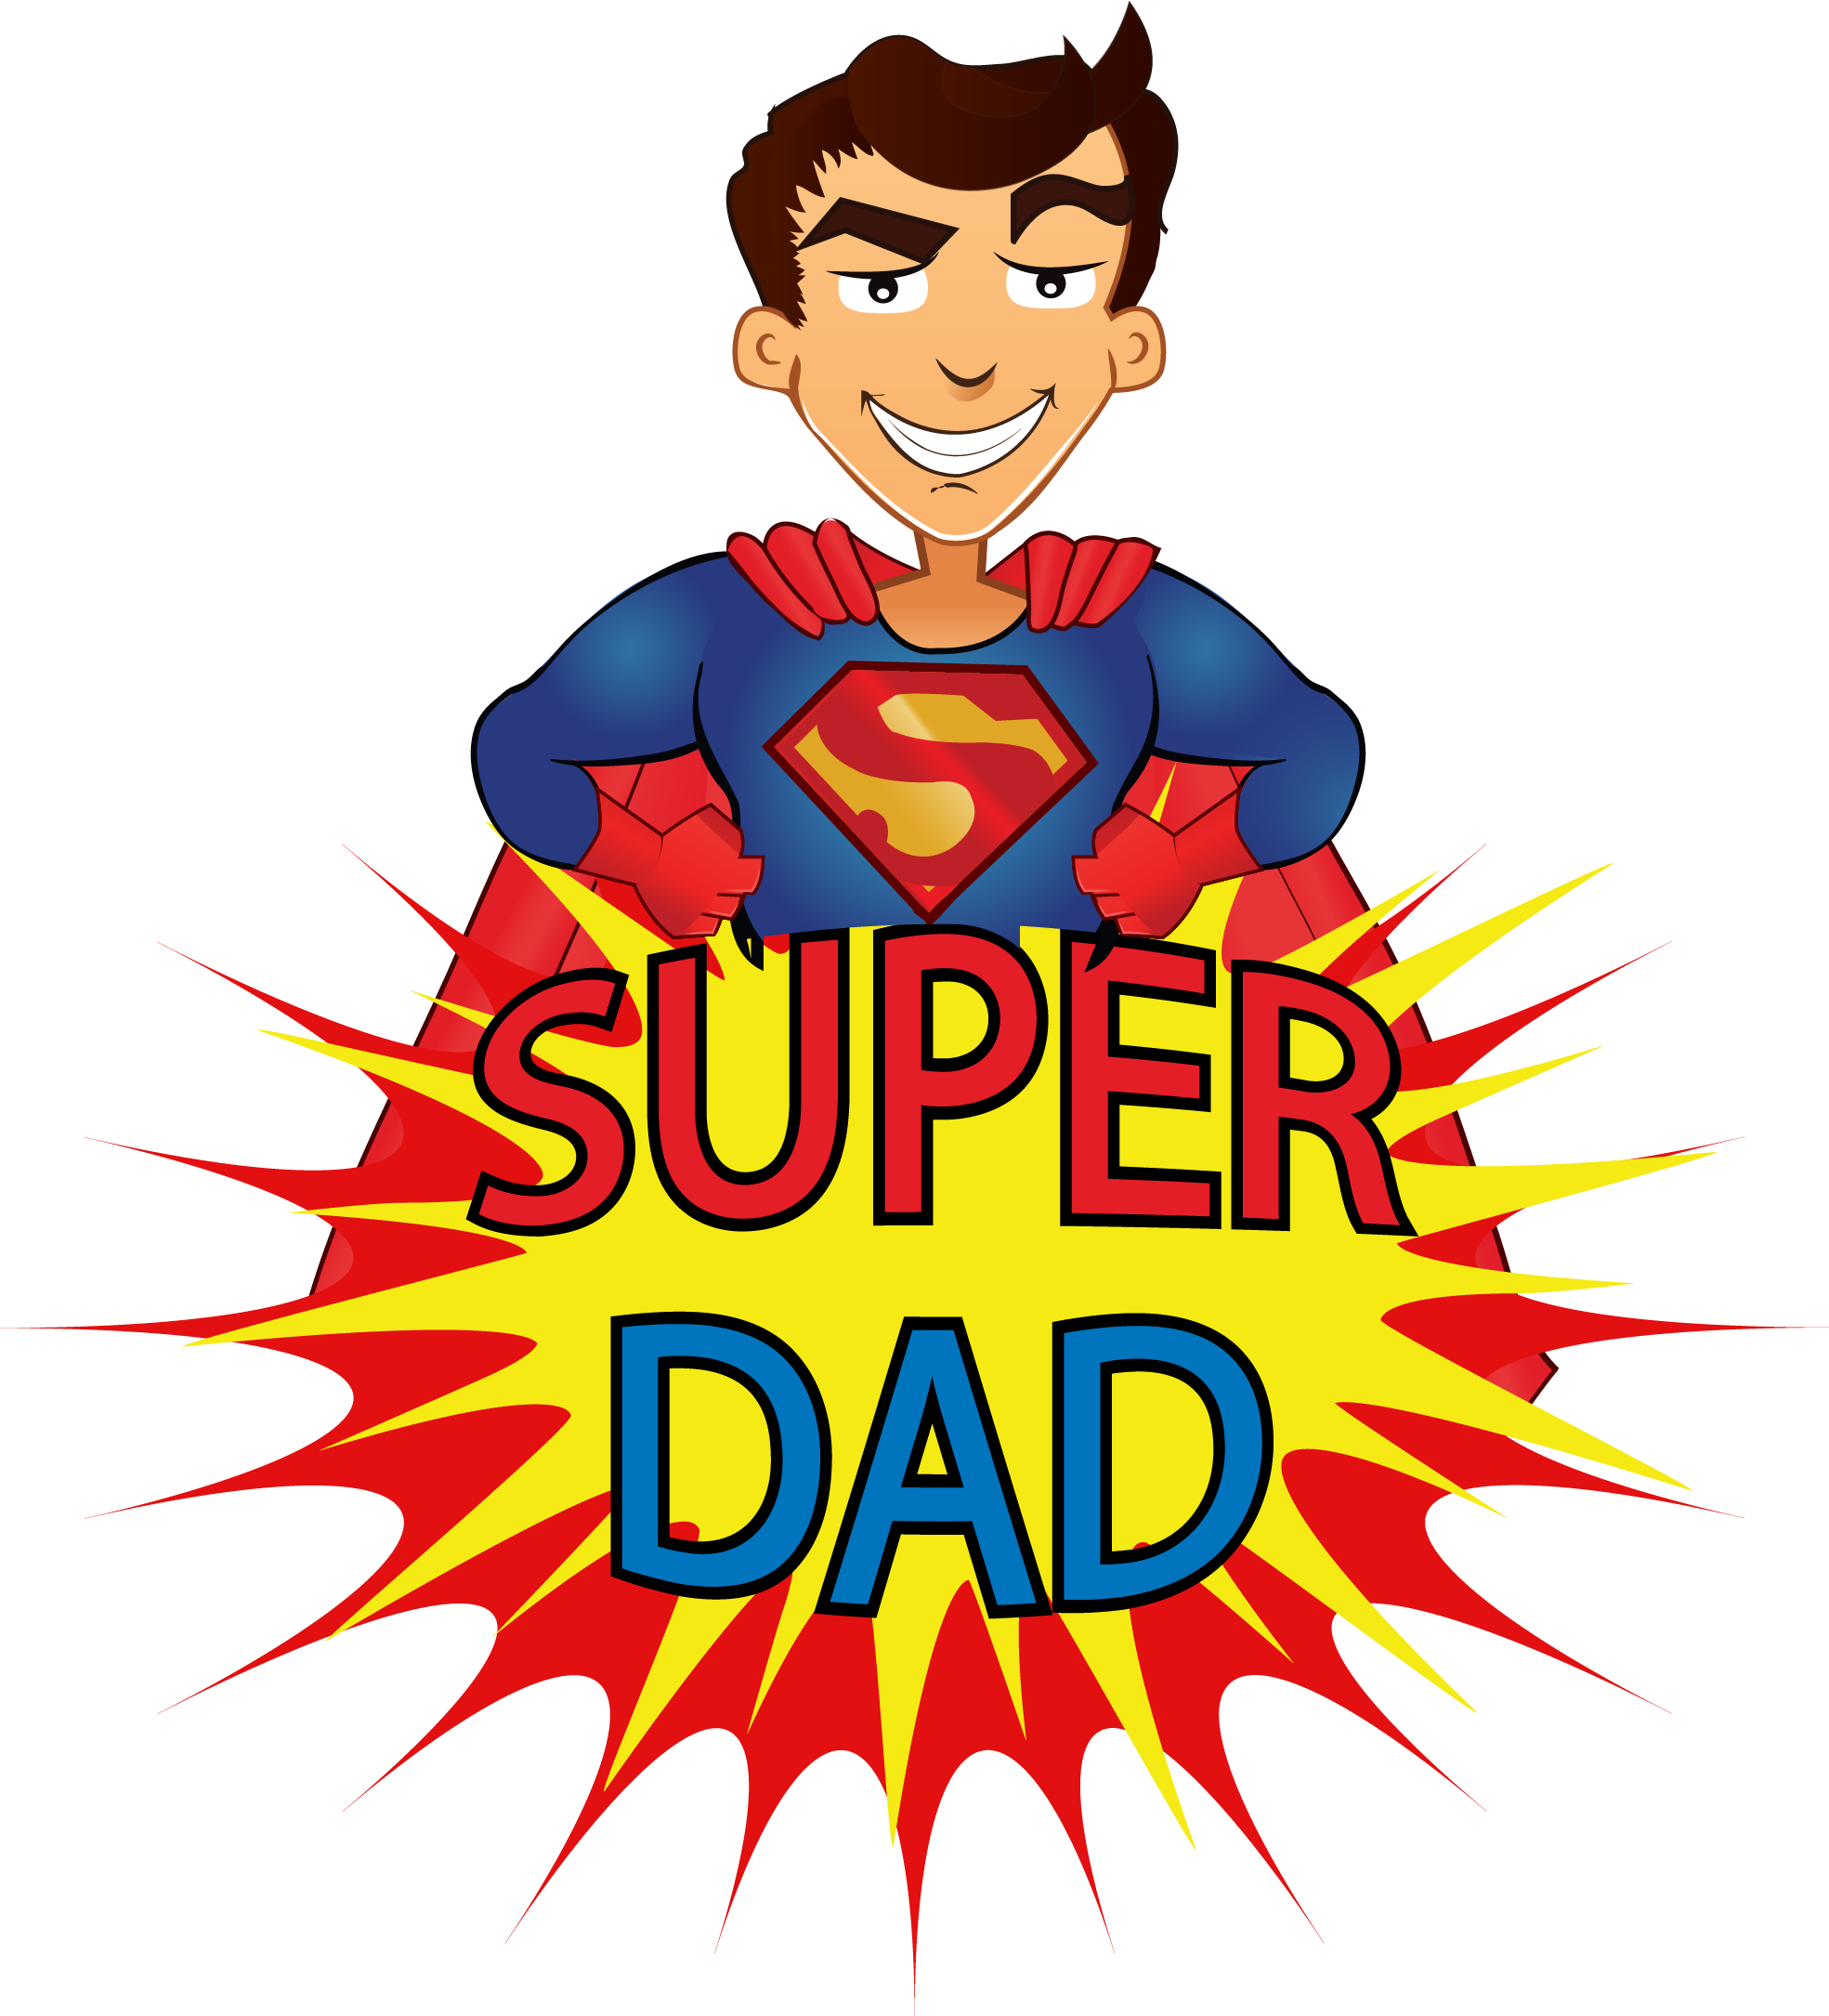 Cartton Super Dad Image 191x210 - Cartoon PNG Images - All Kidsu0027 Fun - Super Dad PNG